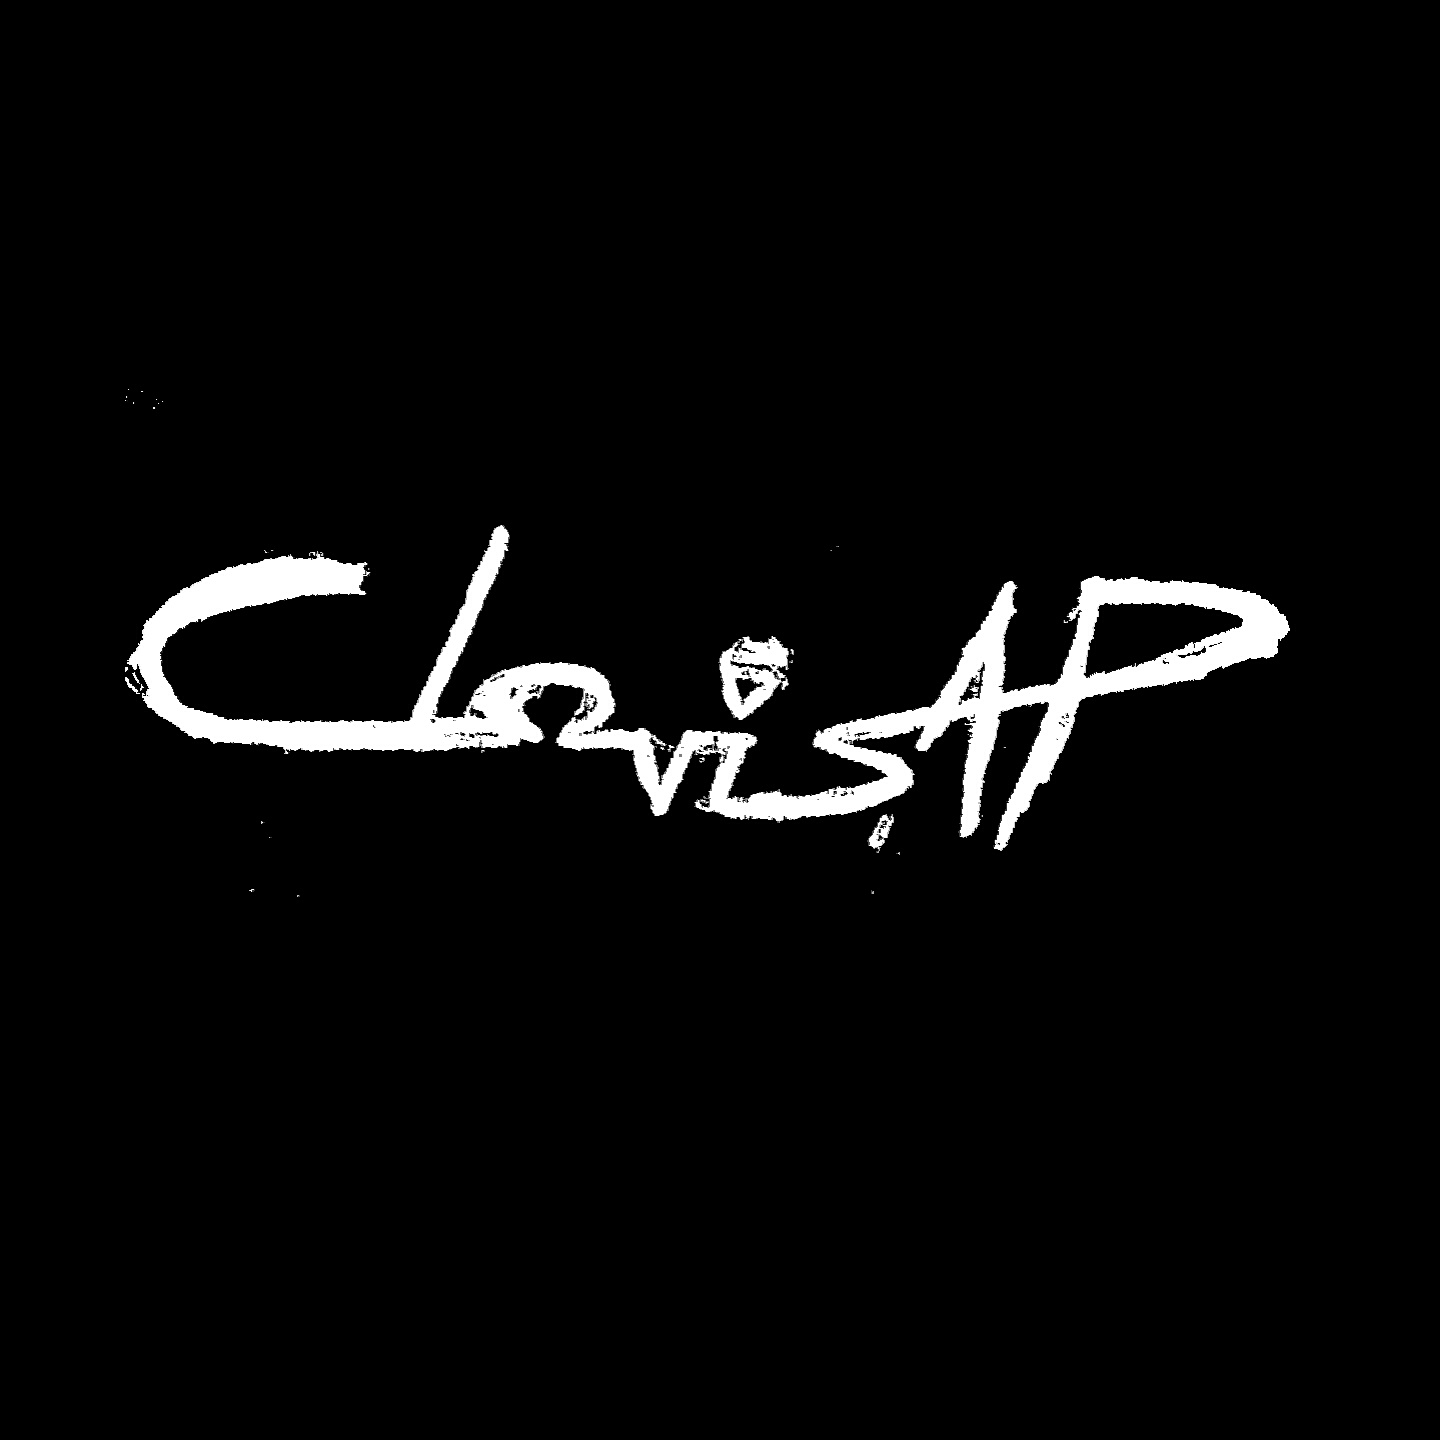 Clovis AP TheArtist | Inspire And Get Inspired. All Rights Reserved.